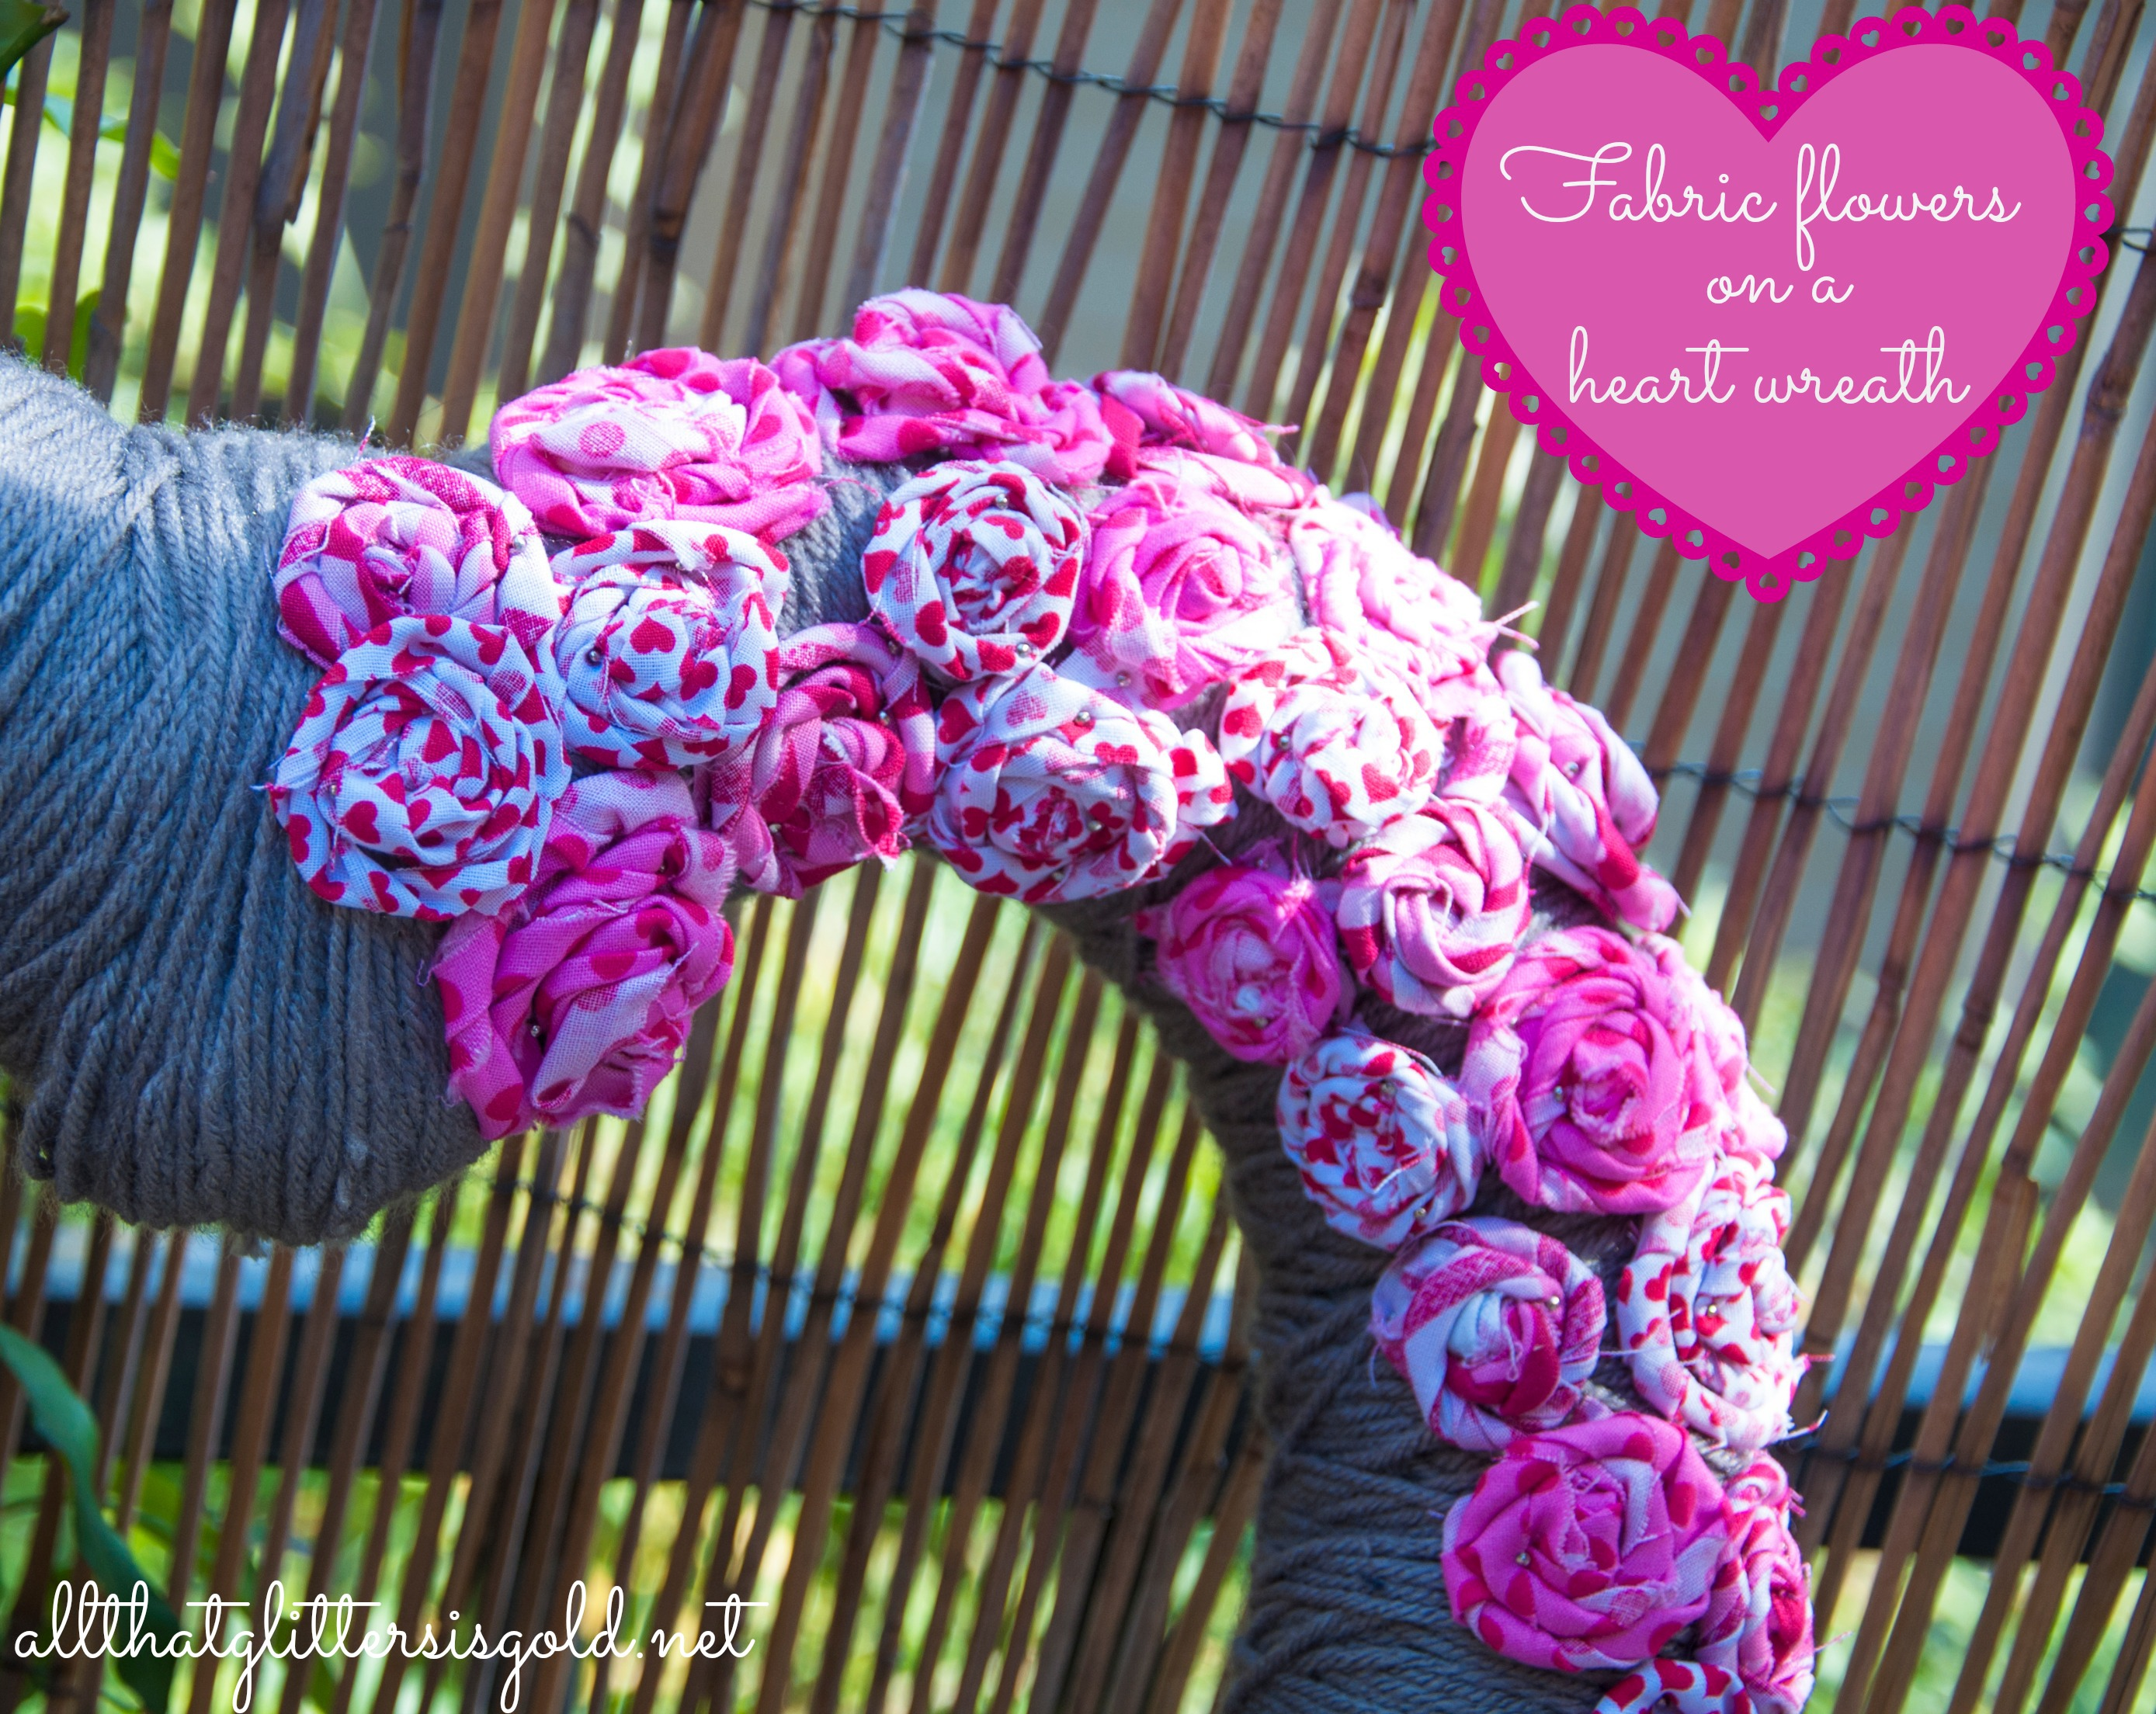 Fabric Flowers on heart wreath